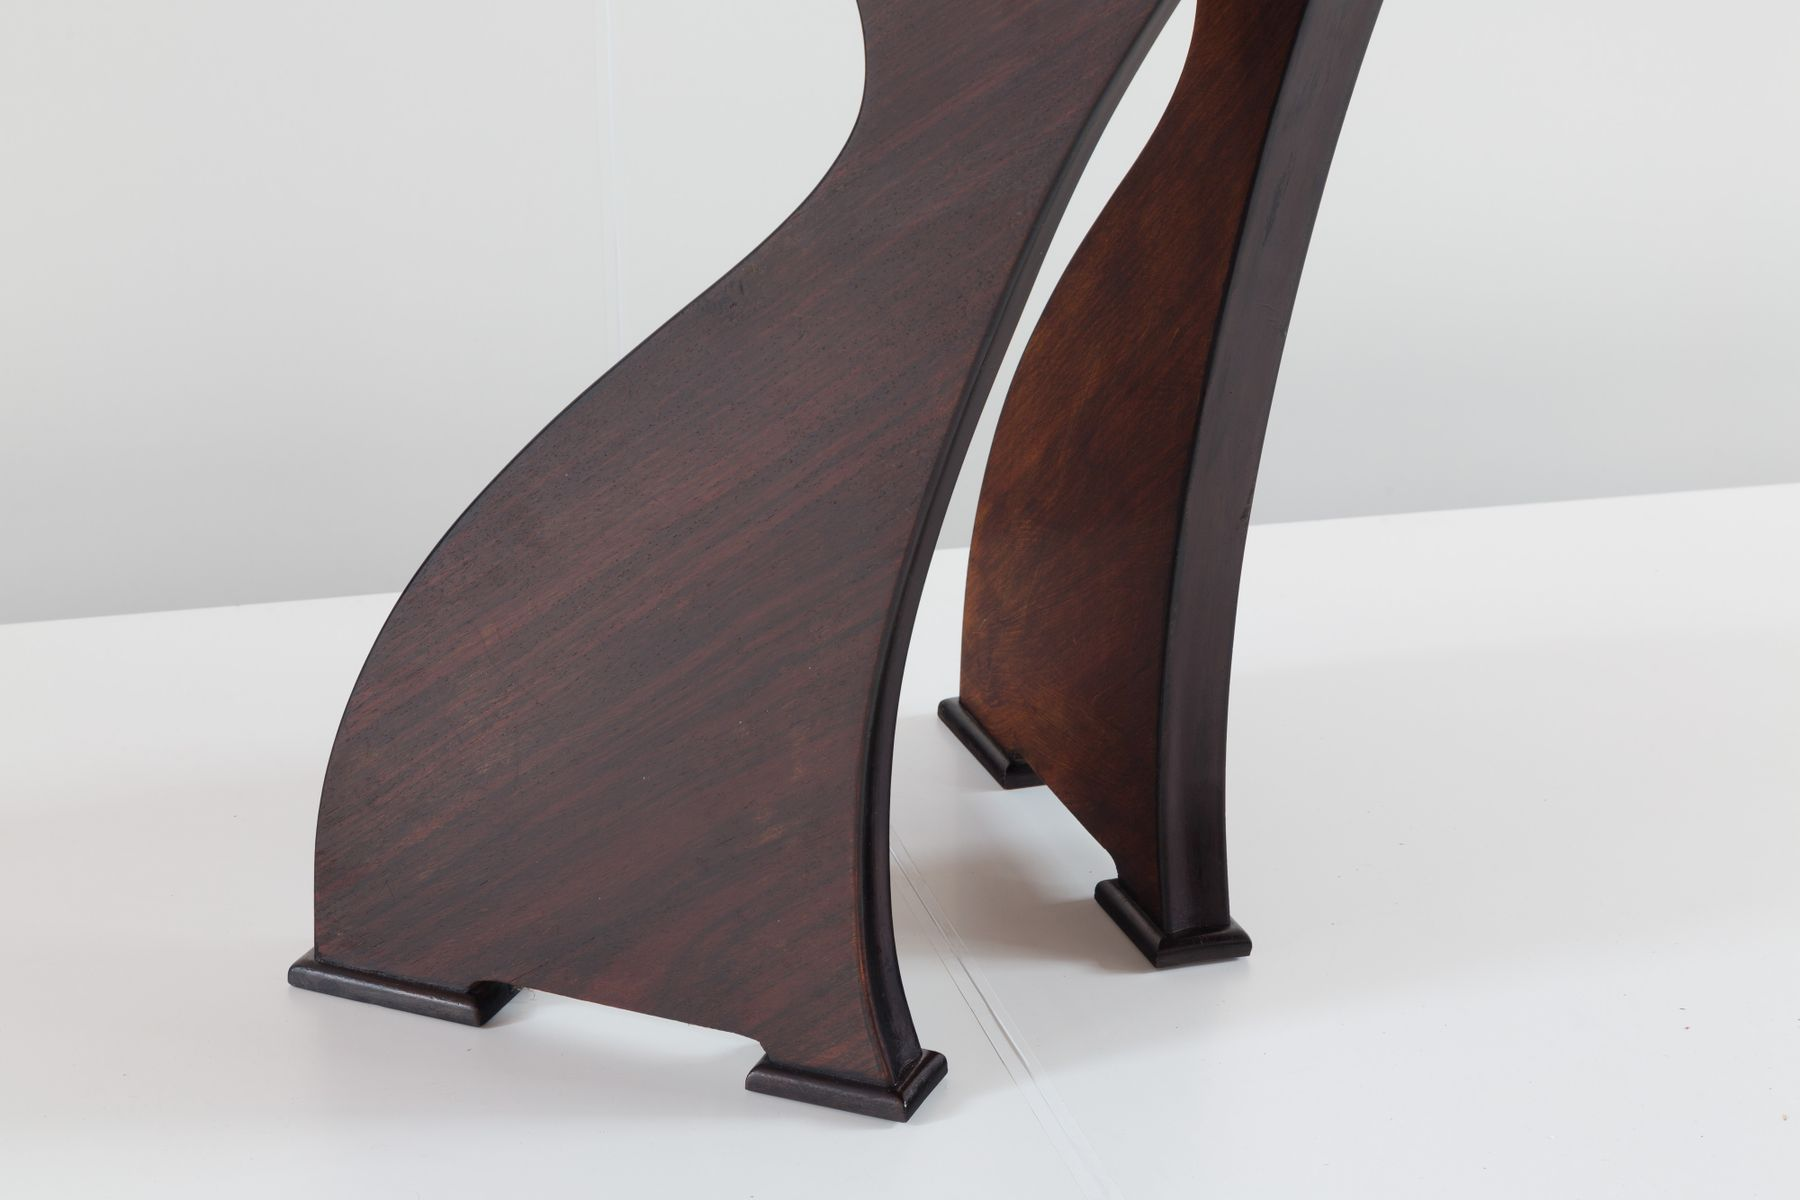 Italian modern dining tables - Sculptural Italian Modern Rosewood Dining Table